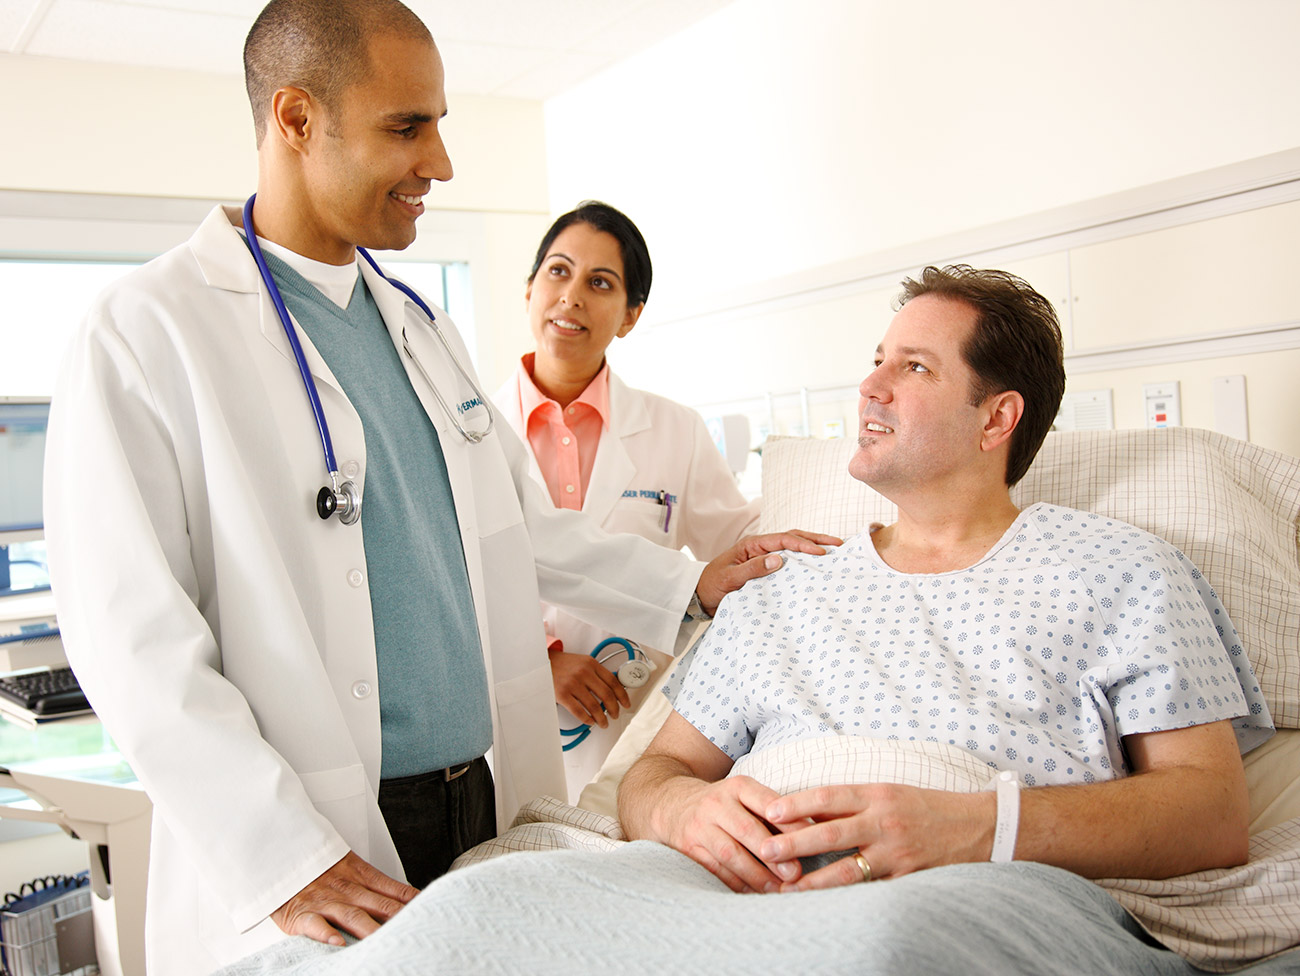 Doctor and nurse speaking to patient